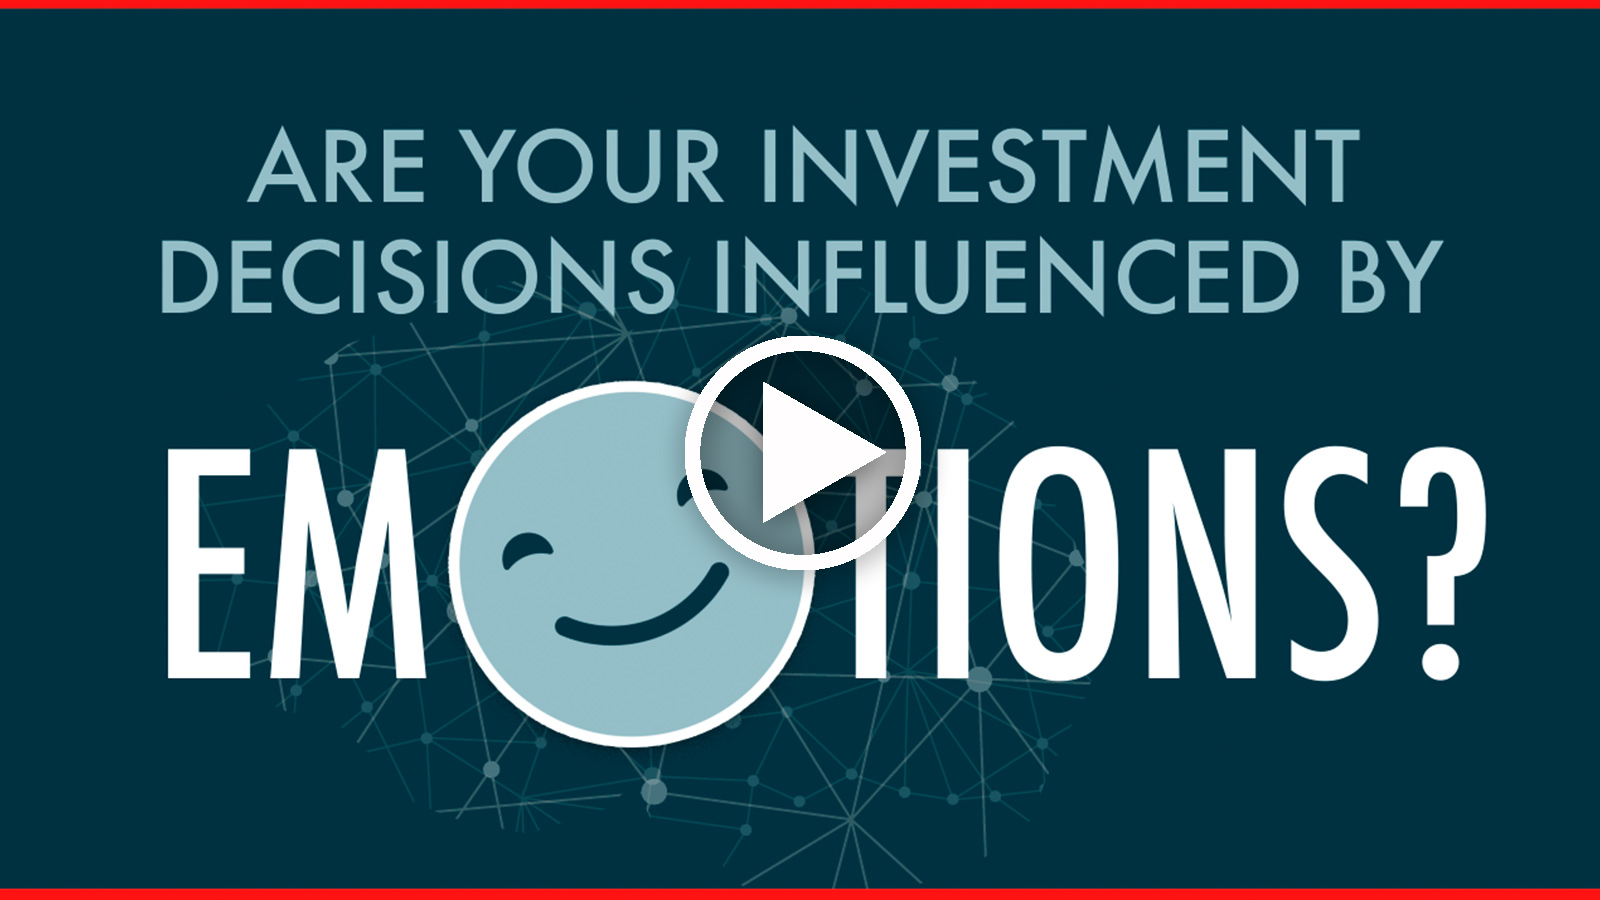 Are Your Investment Decisions Influenced by Emotions?